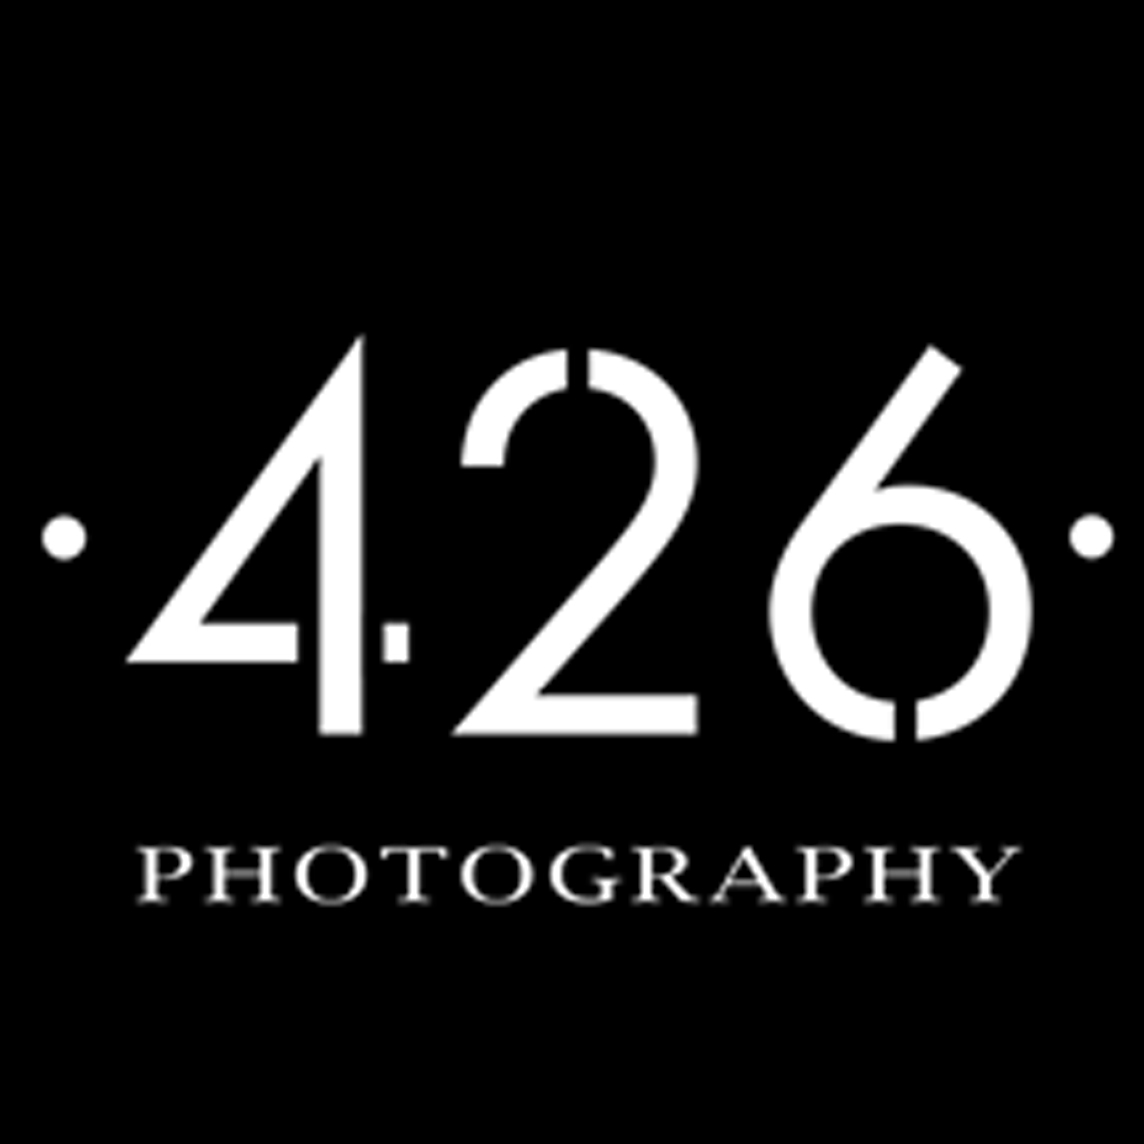 426 Photography